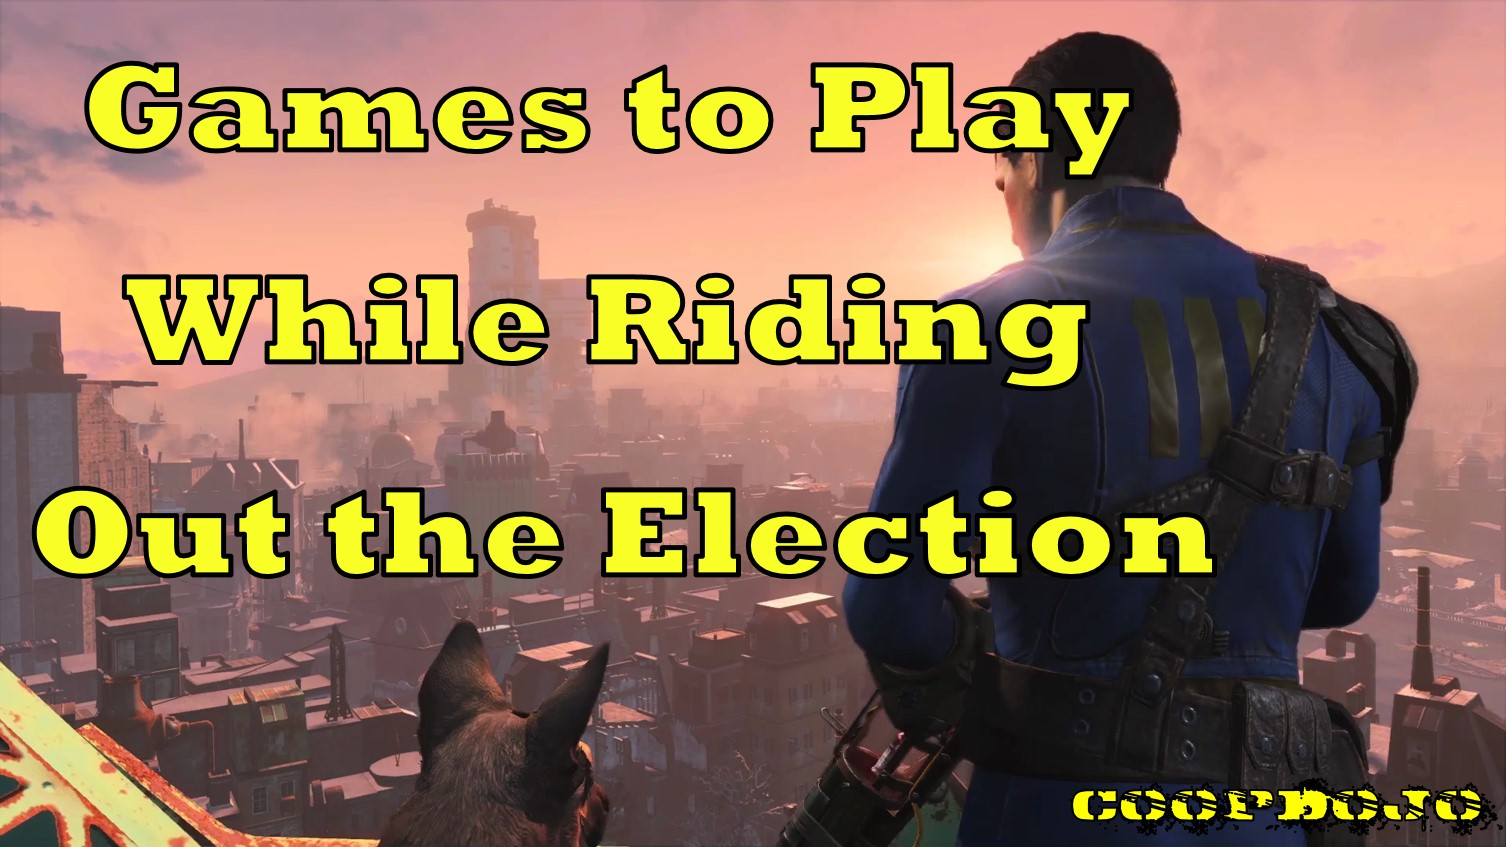 Games To Play To Ride Out The Election